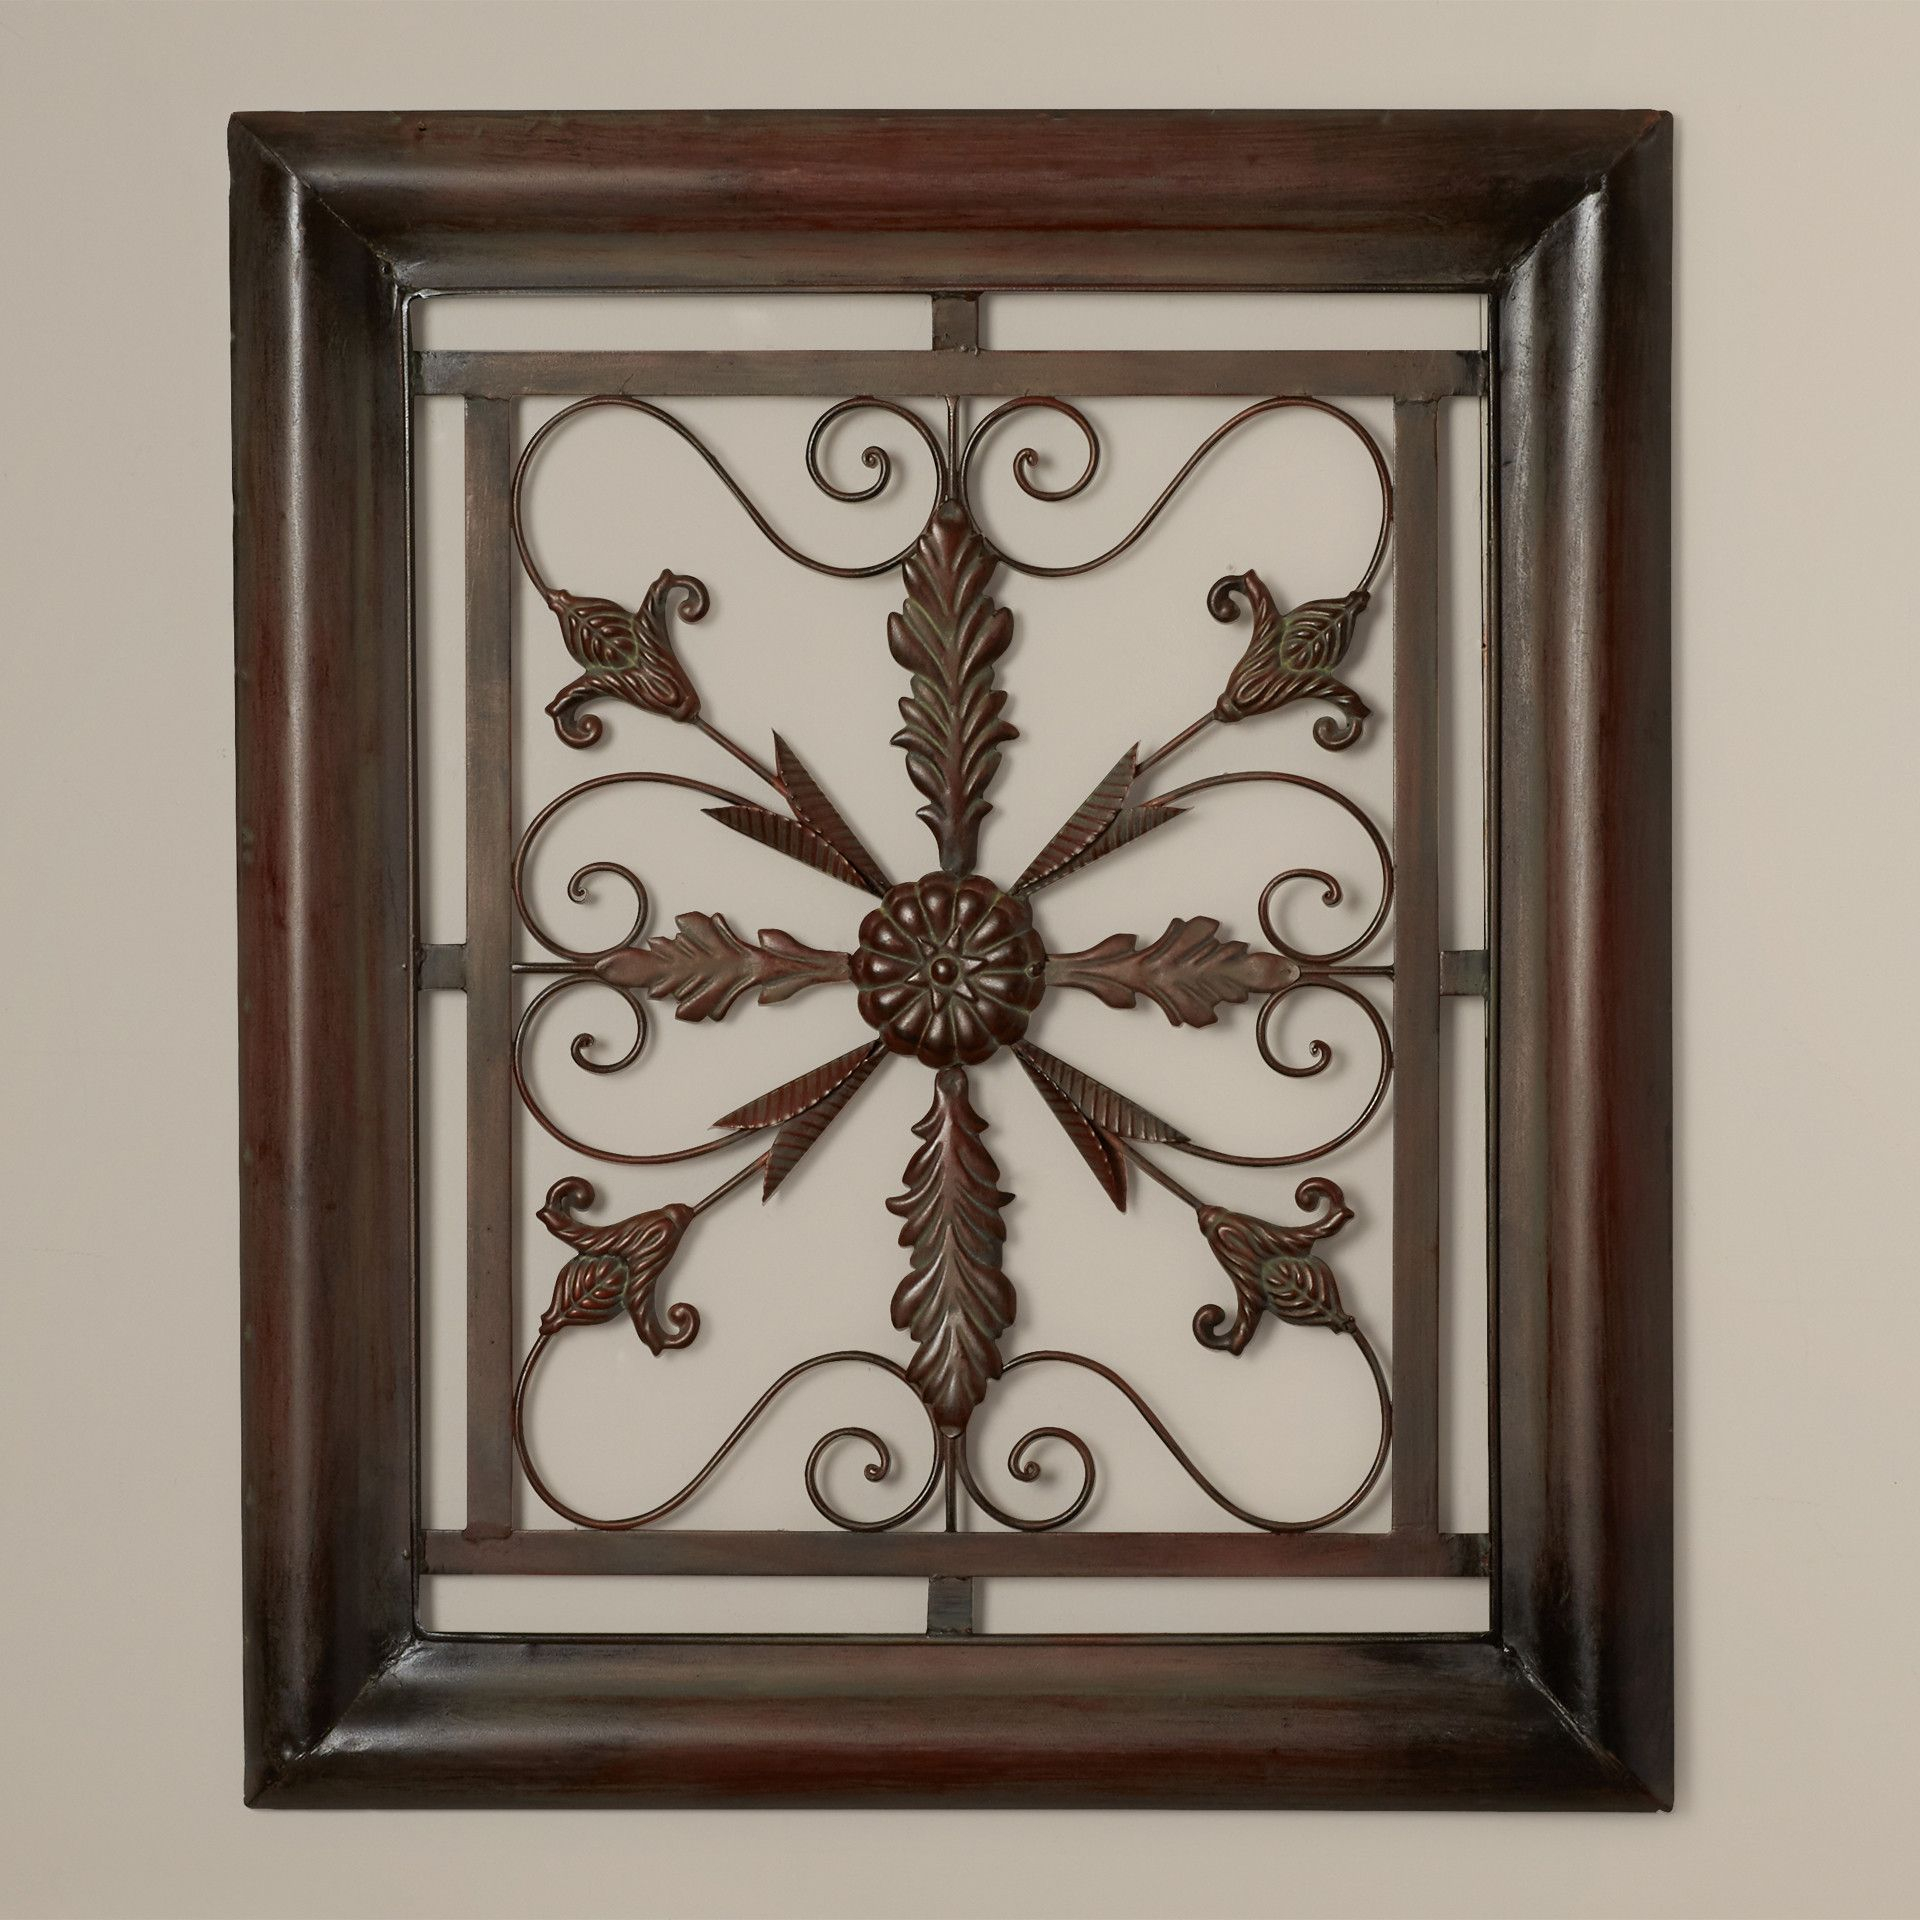 Tuscan Decor Intended For Best And Newest Wall Decor By Charlton Home (Gallery 2 of 20)